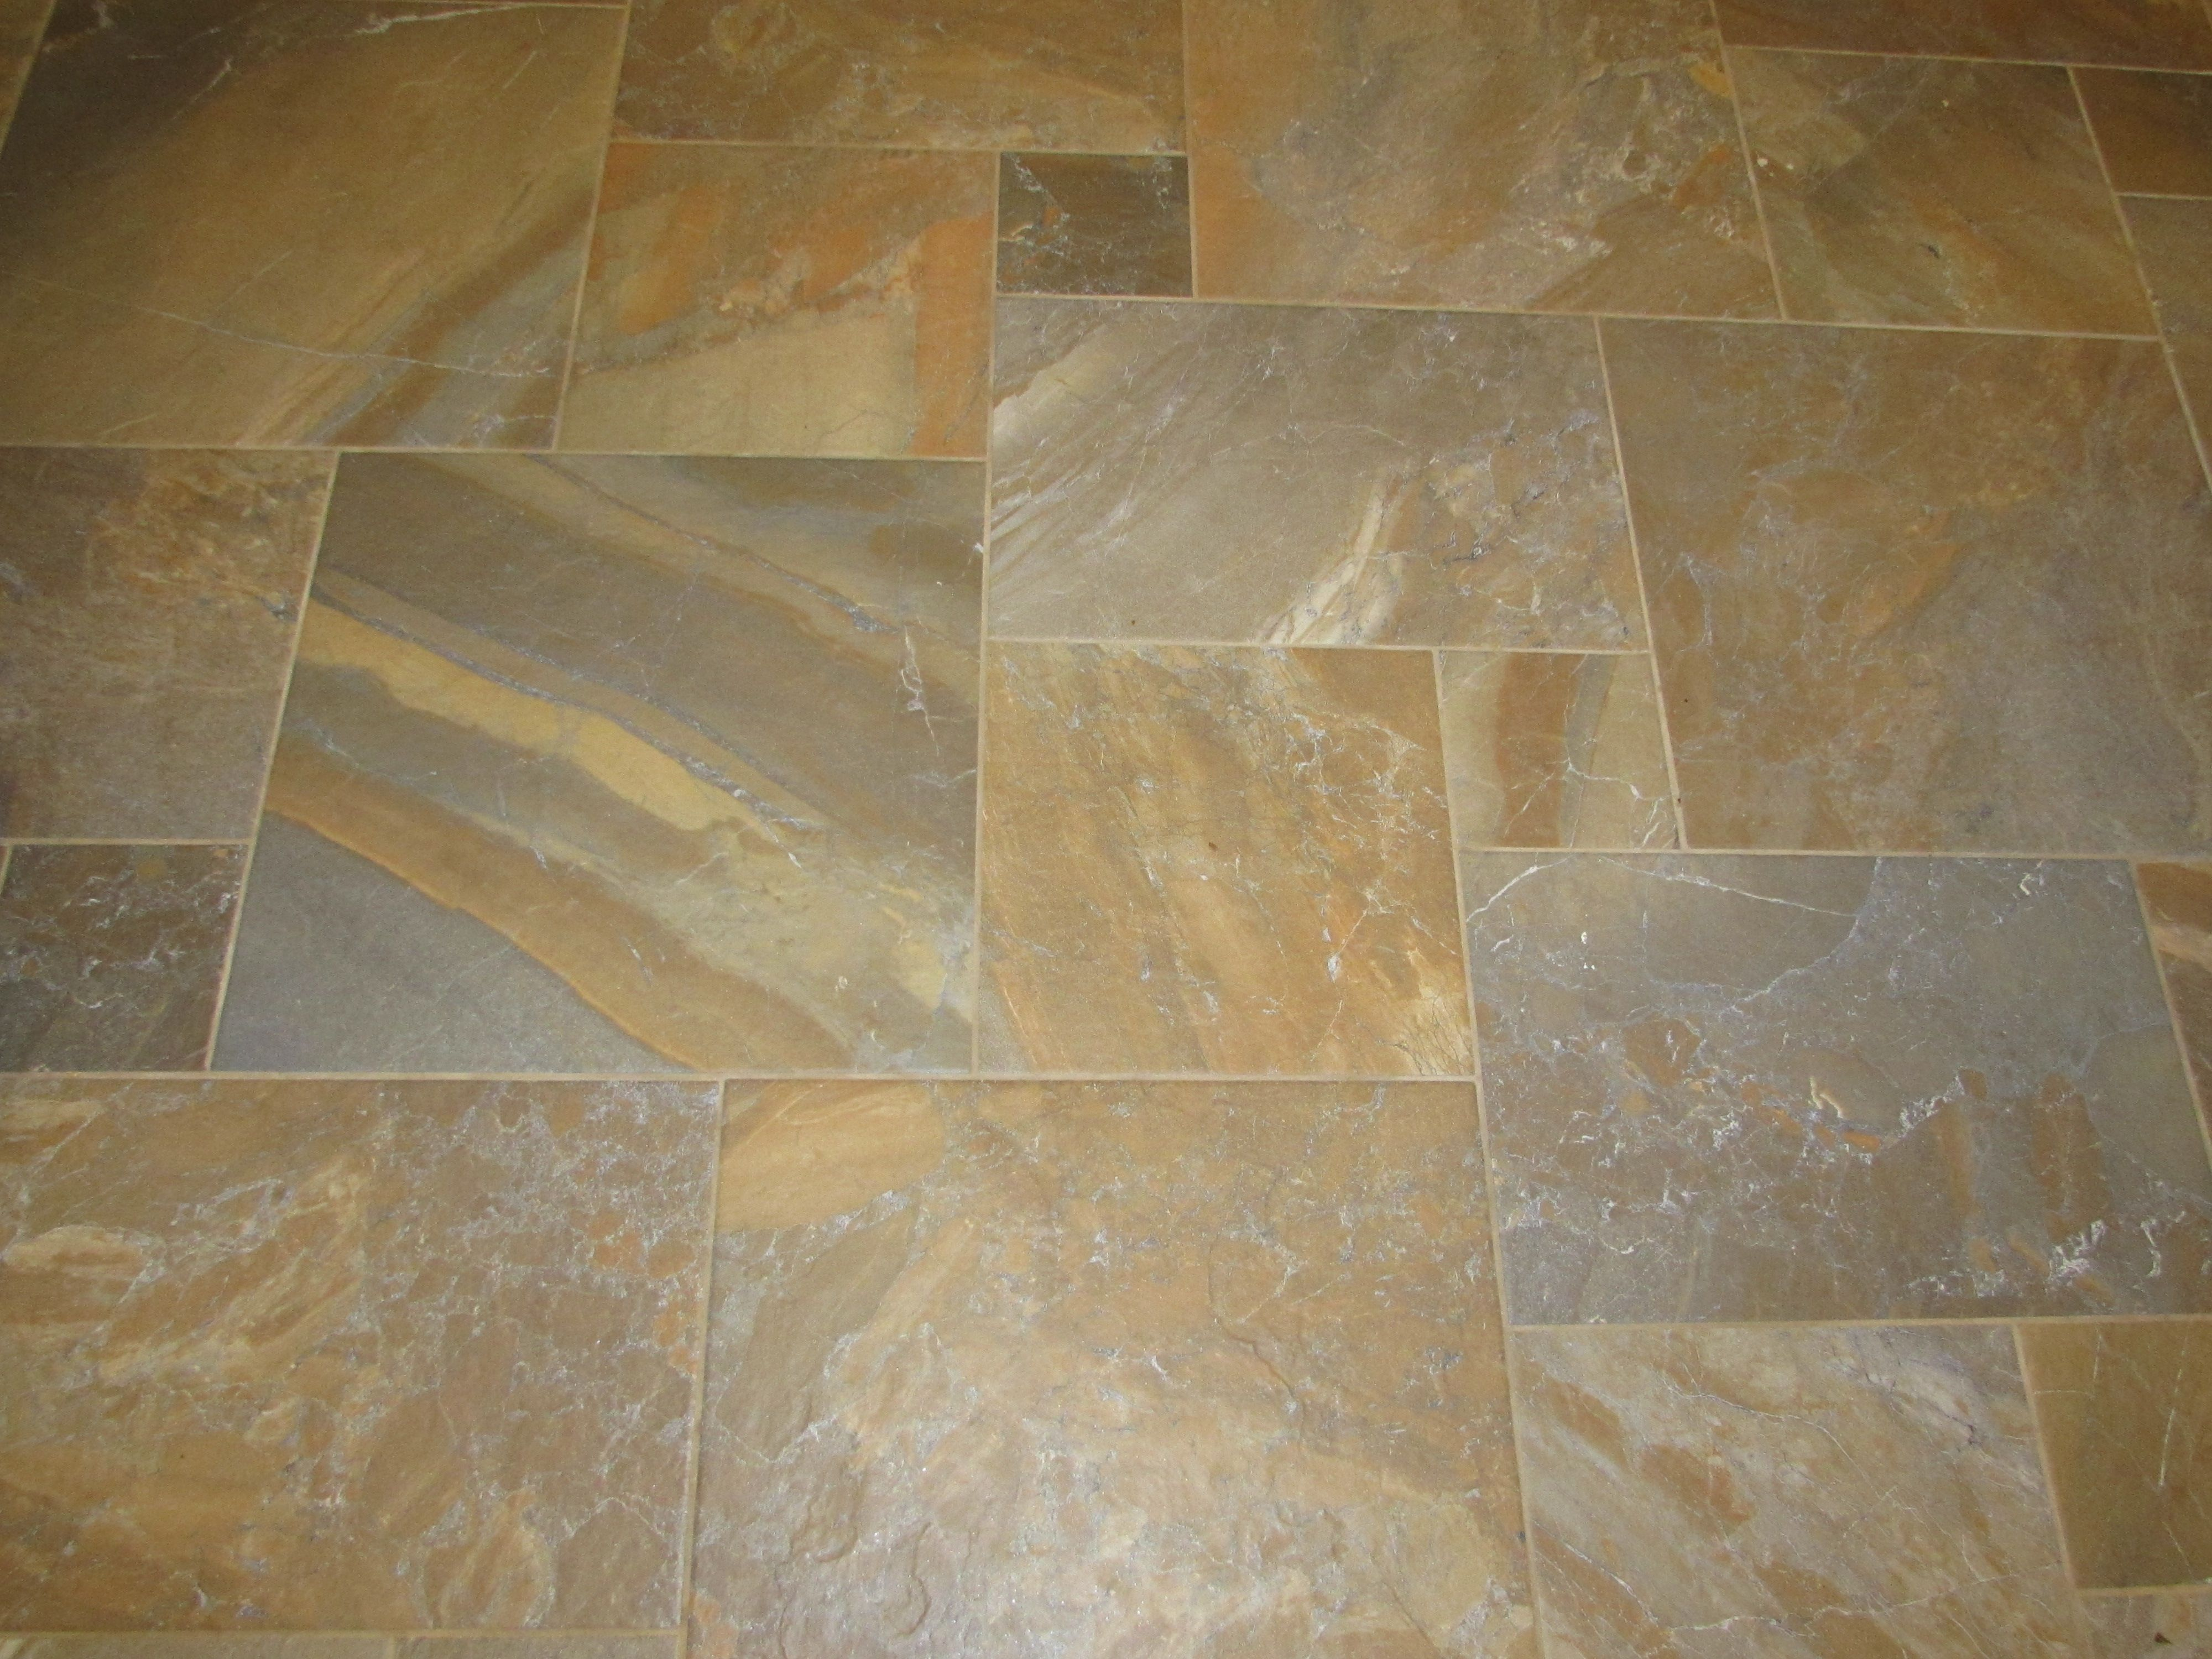 New Floor Tile Daltile Ayers Rock Rustic Remnant from Home Depot